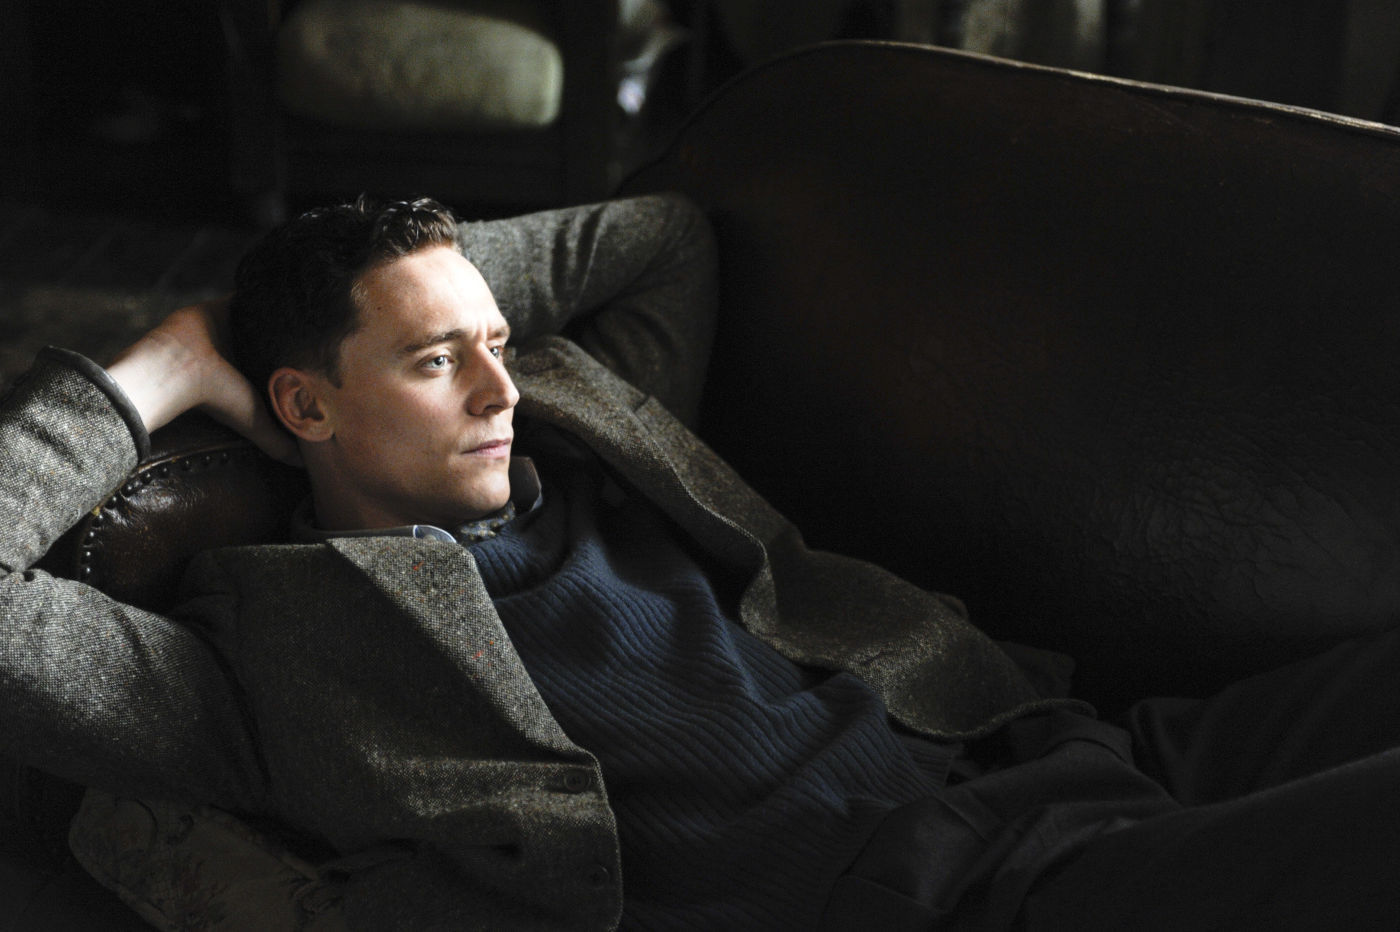 Oh my. His body language is very inviting. : tomhiddleston